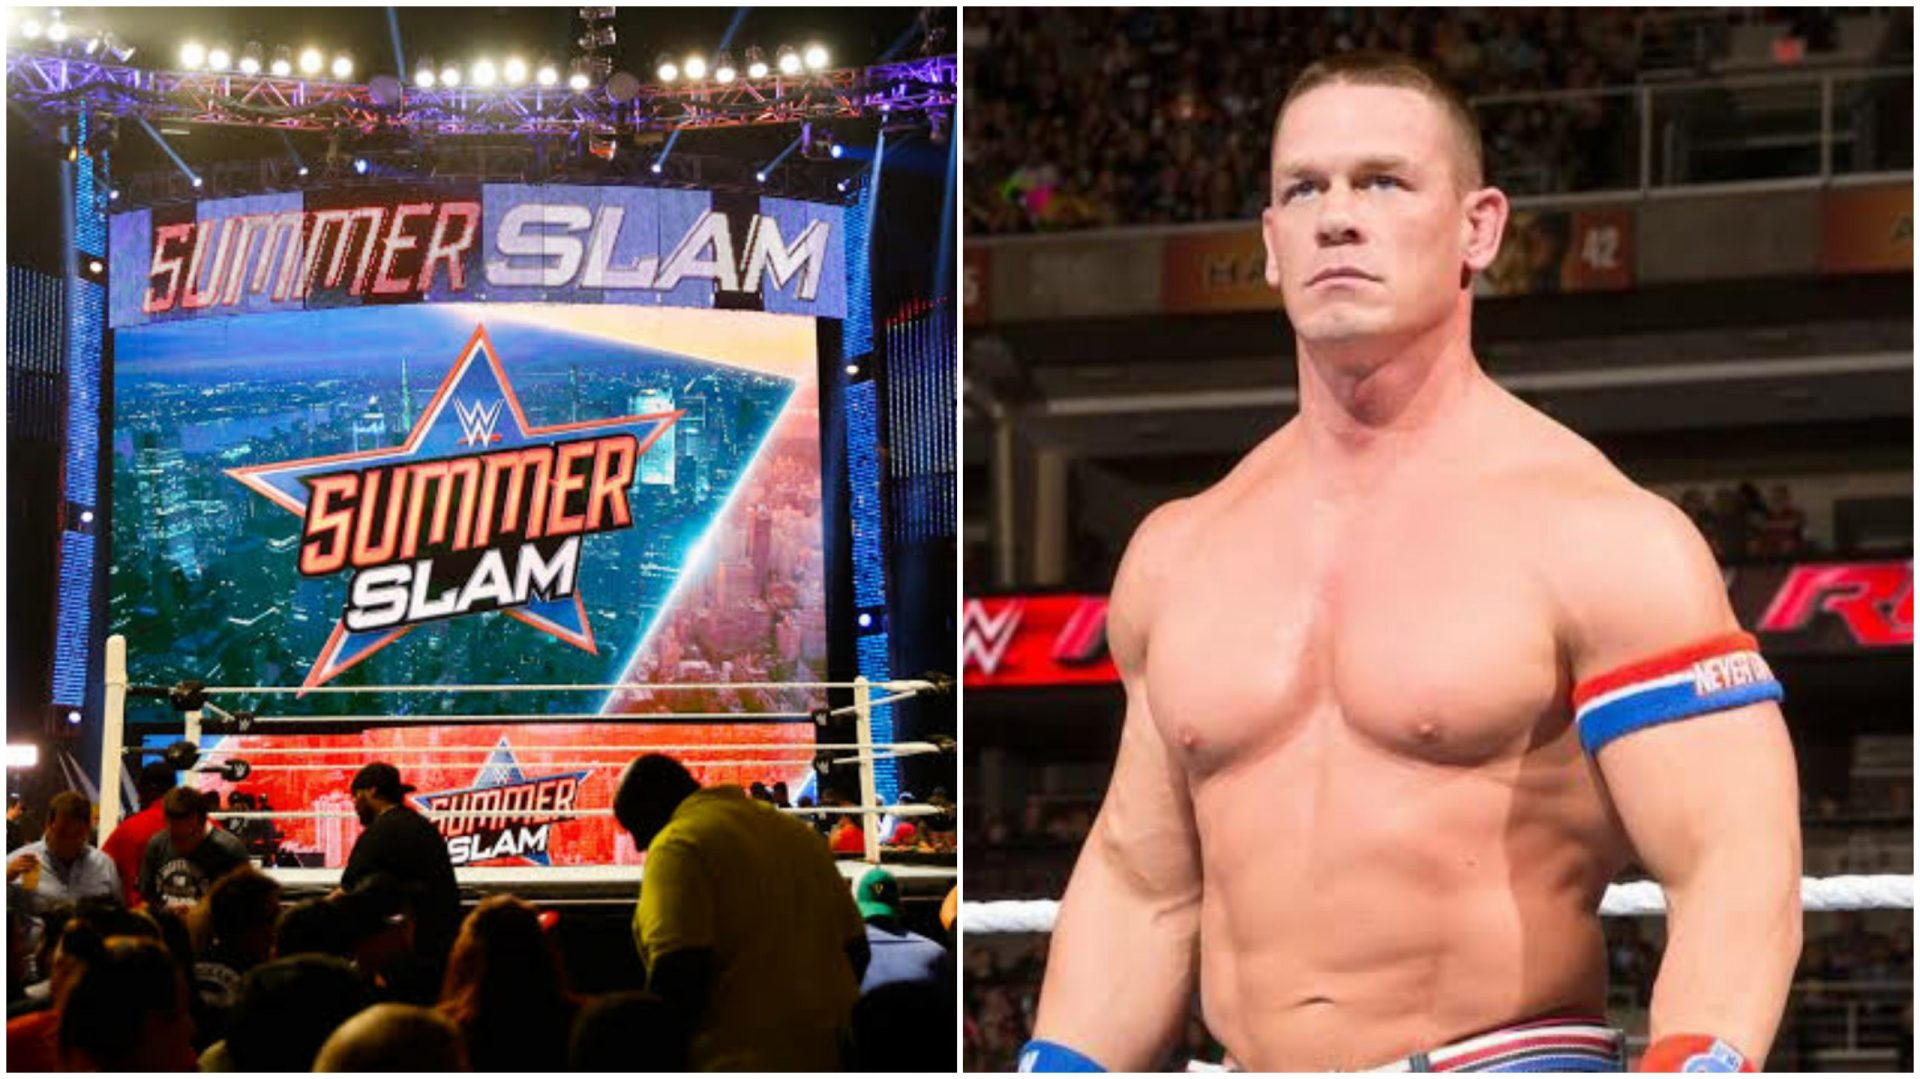 """John Cena """"reacts"""" to WWE Summerslam question - THE SPORTS ROOM"""